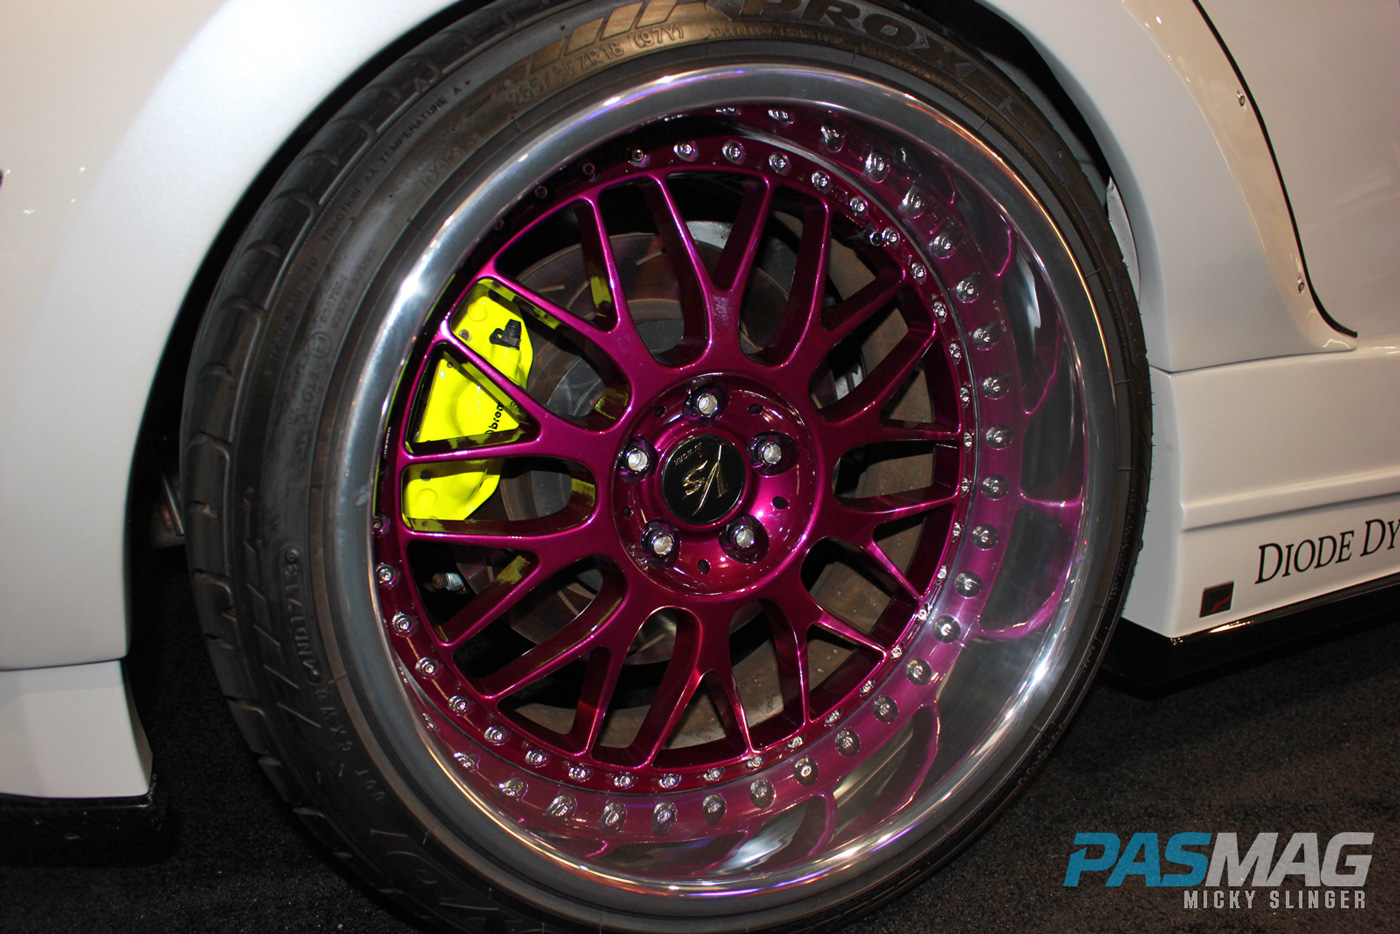 PASMAG CES 2015 Las Vegas NV BunnyHunter Scion FRS ARC Audio Work VSXX